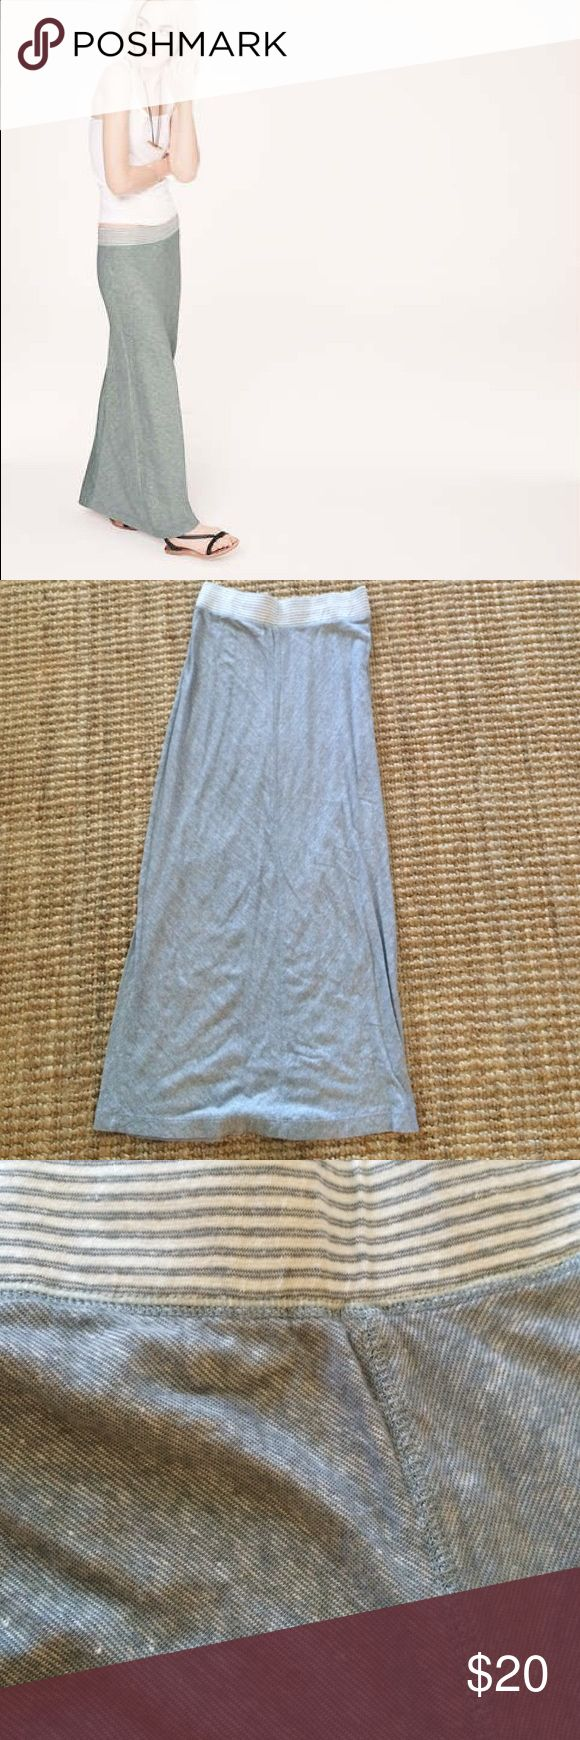 "Lou&Grey grey maxi skirt, nwot, size xs Adorable maxi skirt, size xs, has been hanging in my closet, hasn't been worn. Just a size too small for me unfortunately. 13"" at waist unstretched, 40"" long. Lou & Grey Skirts Maxi"